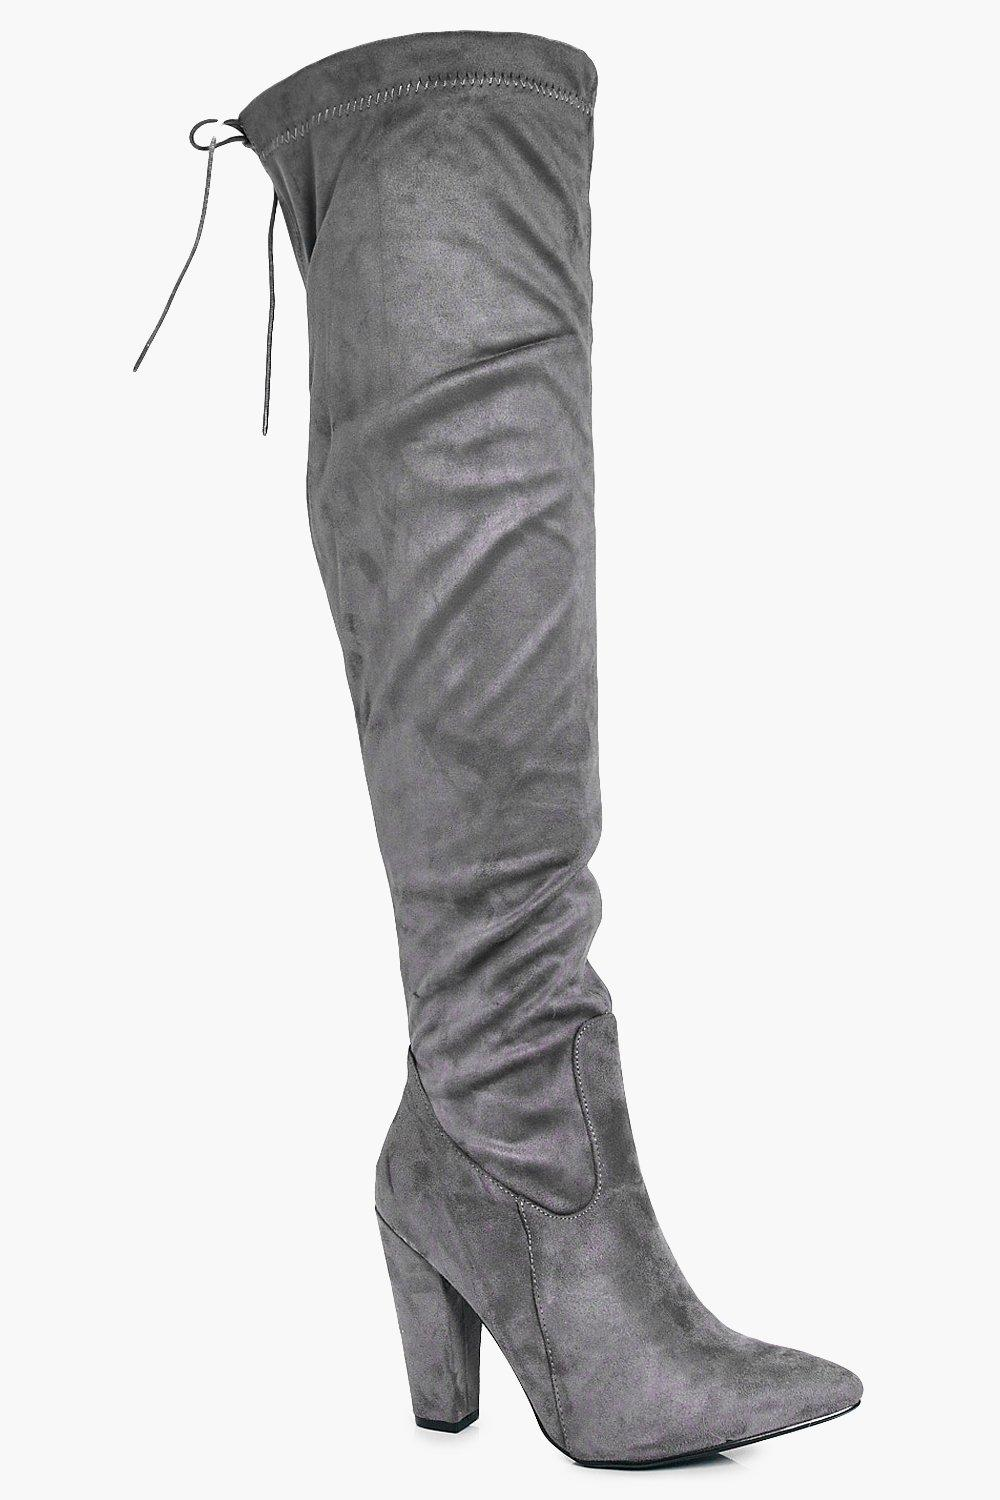 d8879b1b8fc Tia Wide Fit Over The Knee Block Heel Boot. Hover to zoom